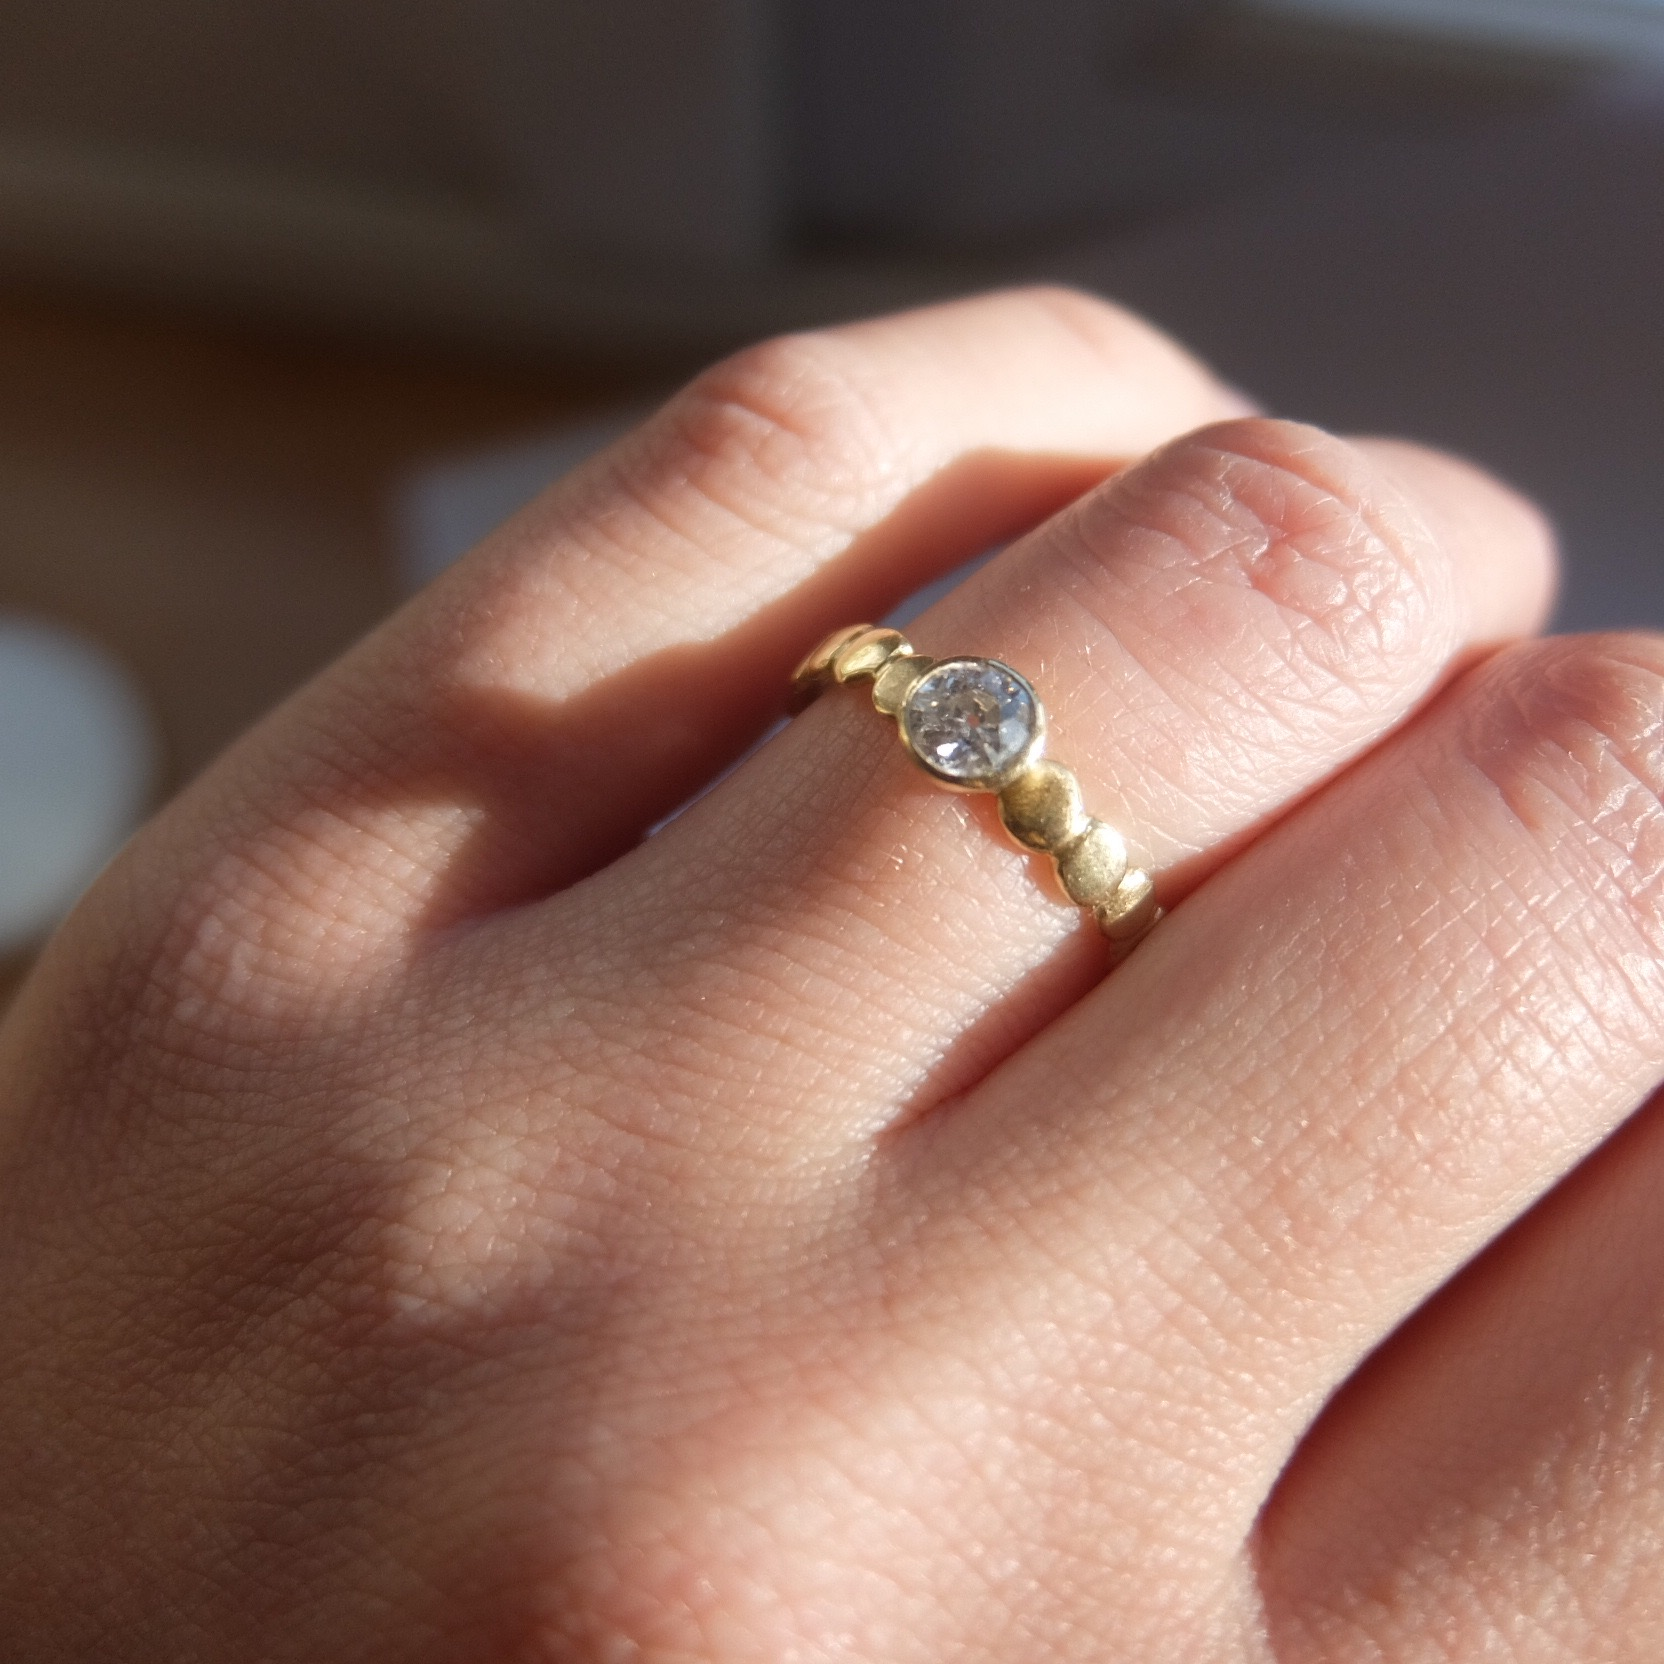 handmade alternative contemporary diamond engagement ring engagement rings devon pebble rings pebbles uk bespoke classic 0.3ct 0.35ct 0.4ct gold 18ct yellow gold full rubover bezel setting jasmine bowden genuine.jpg